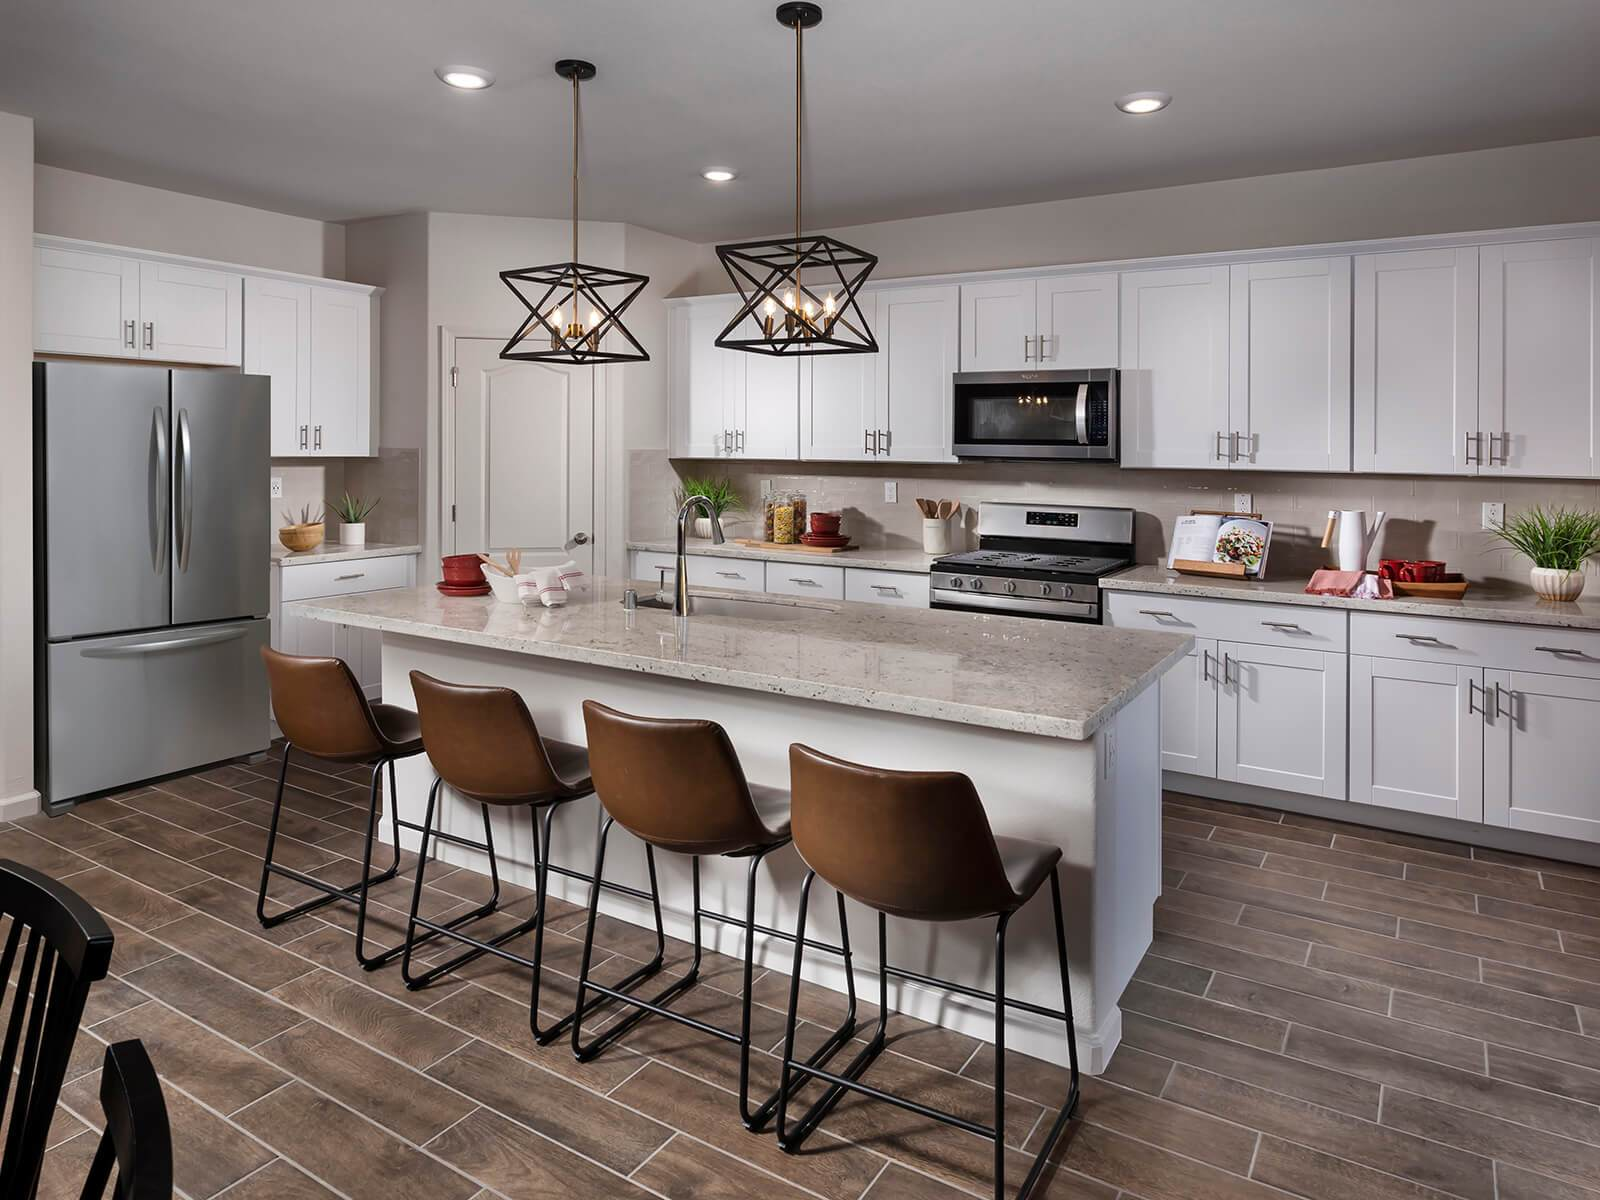 Kitchen featured in the Residence 6 By Meritage Homes in Sacramento, CA